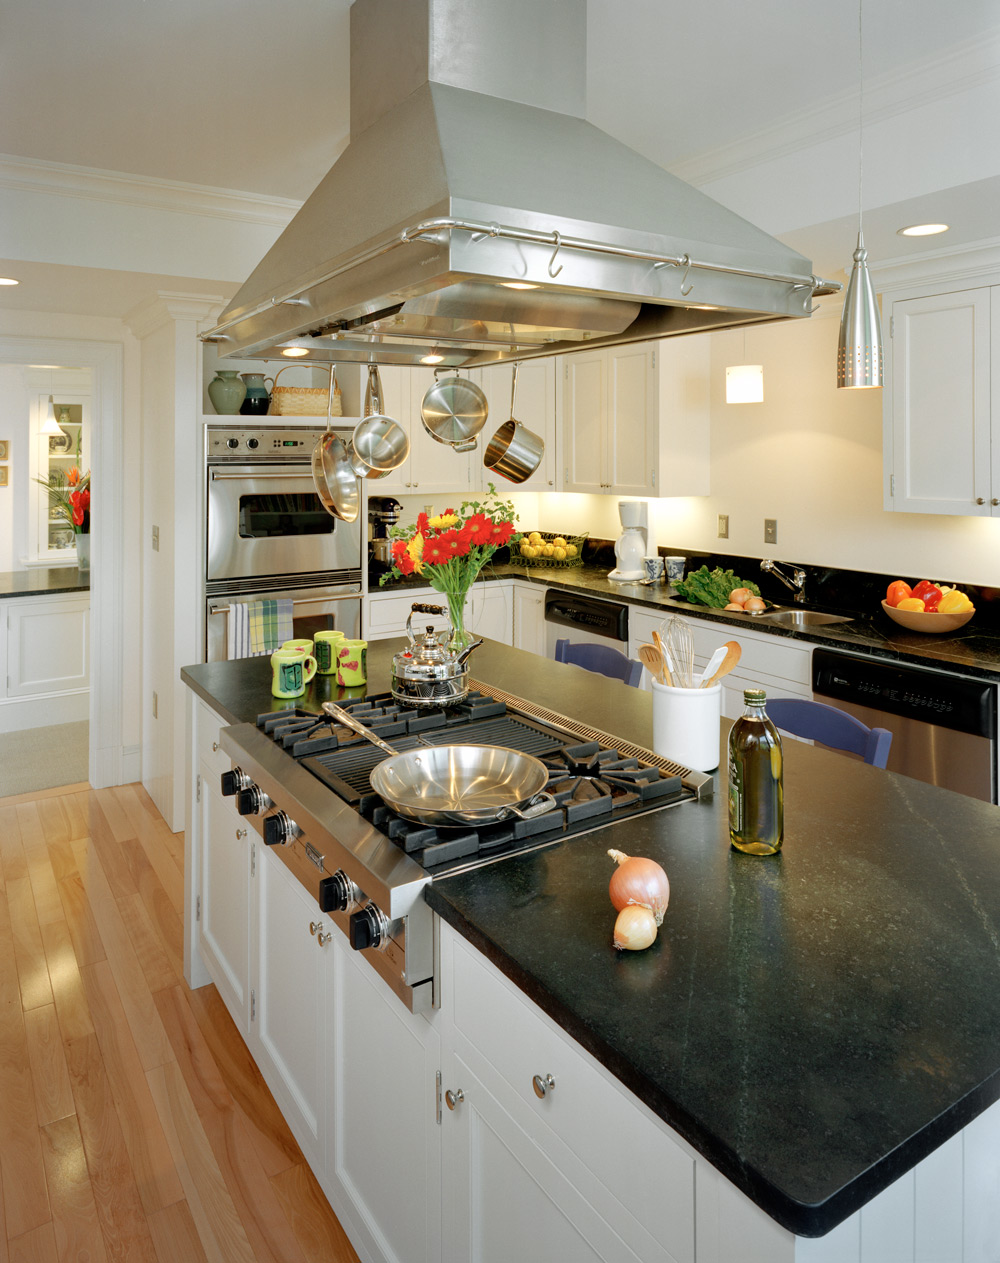 MIT-Ashdown-kitchen.jpg